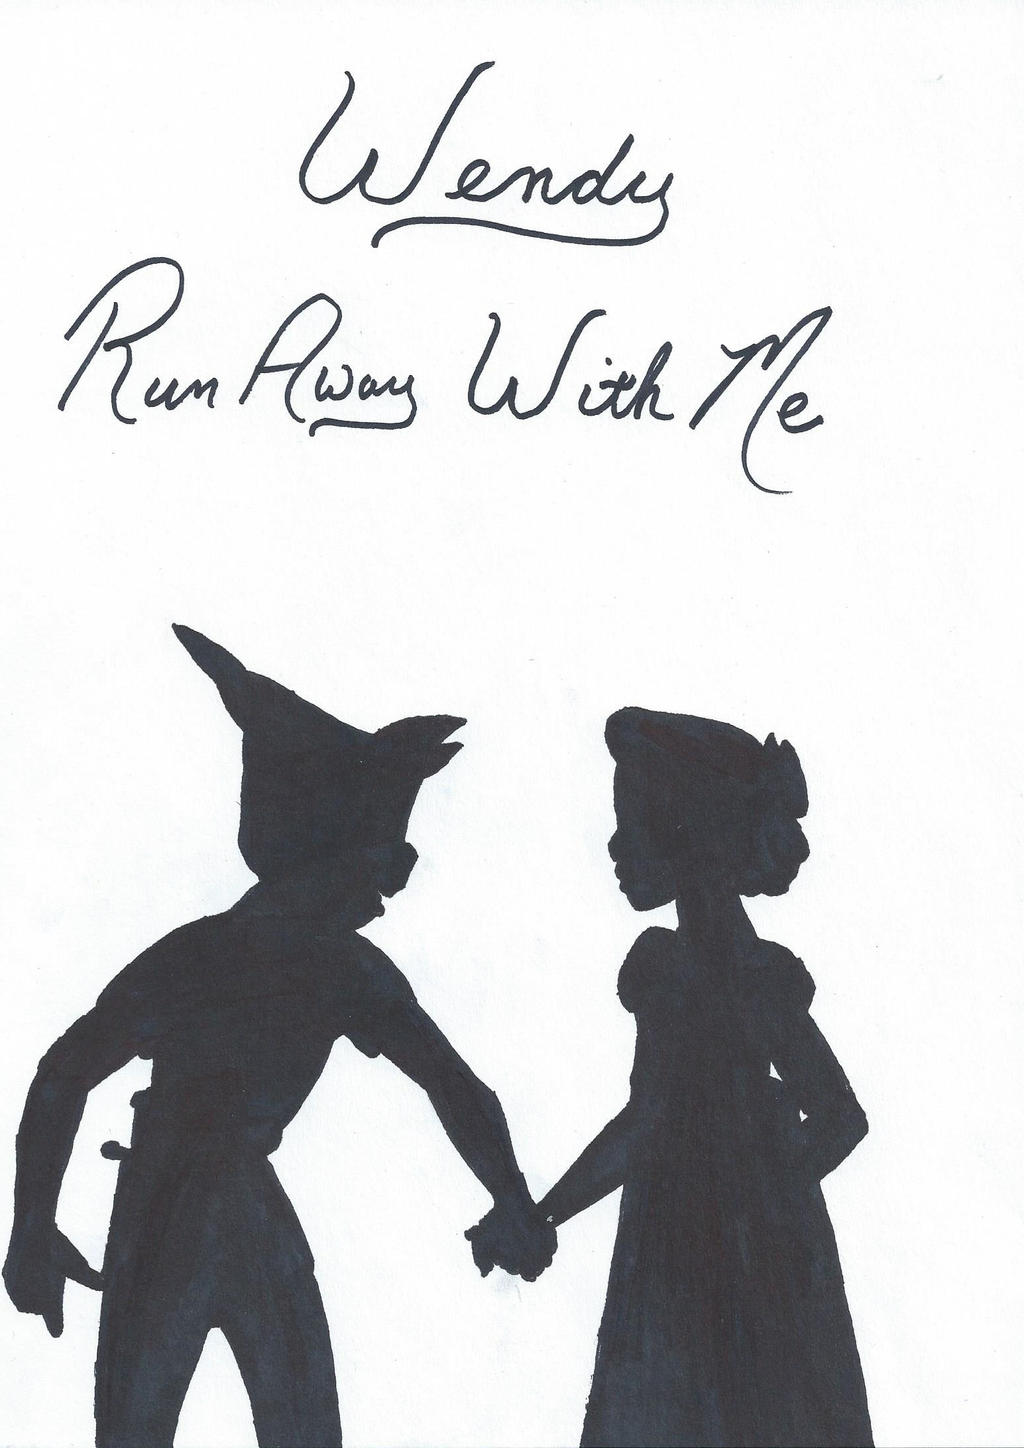 Peter Pan And Wendy Tumblr Black And White